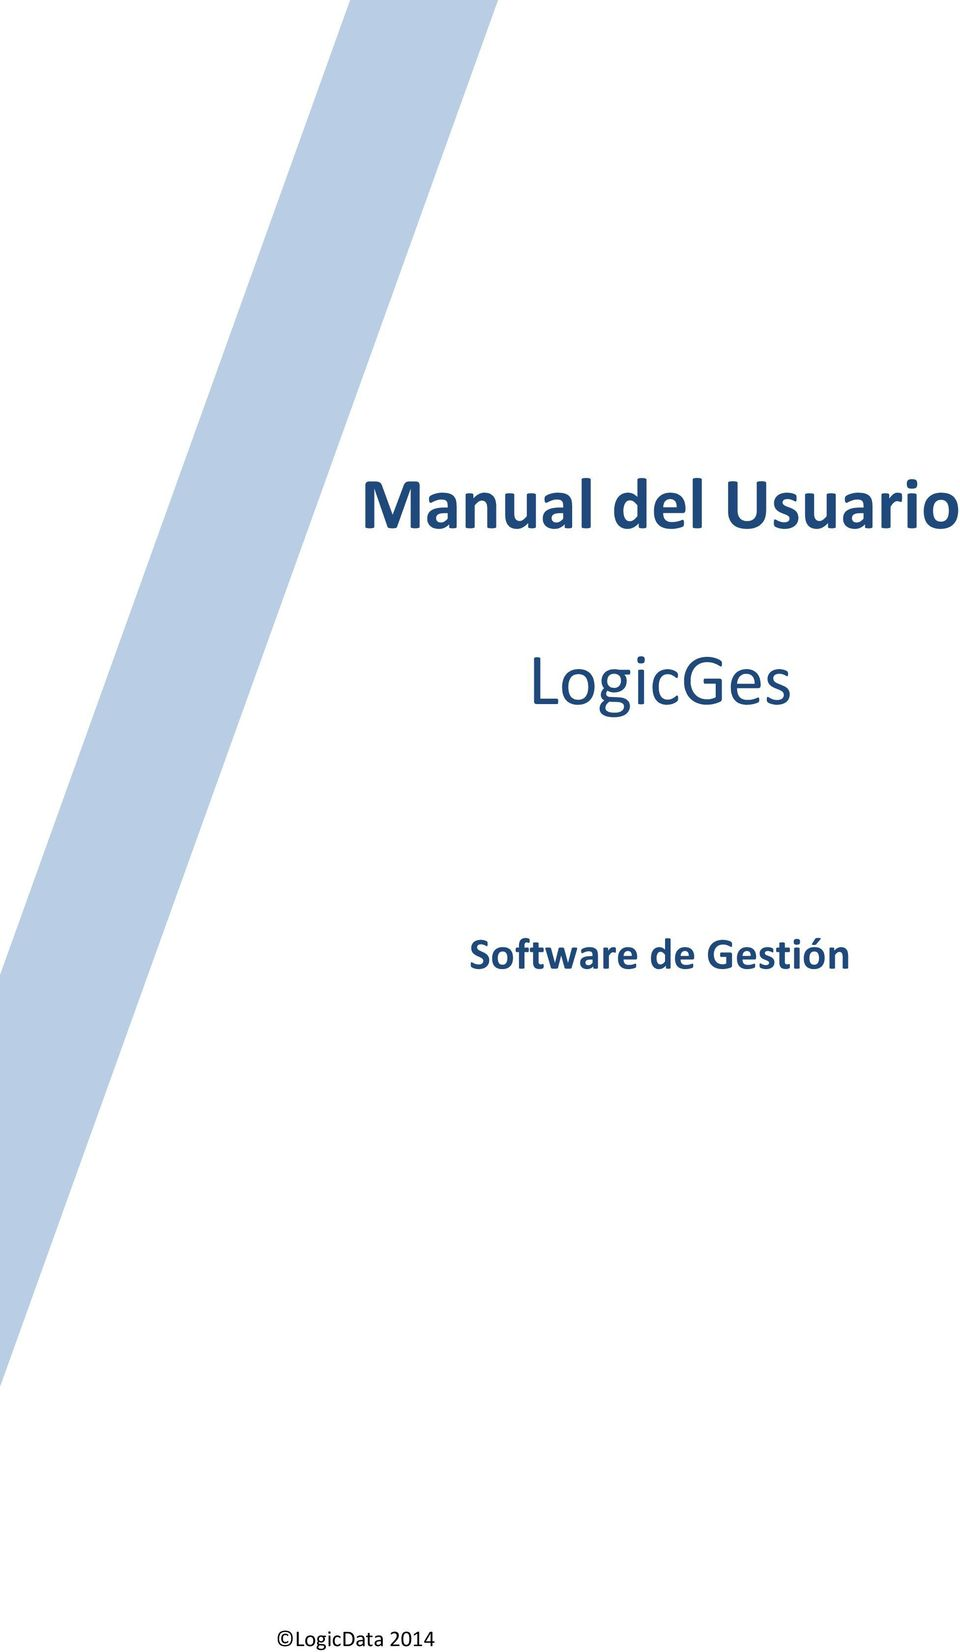 LogicGes